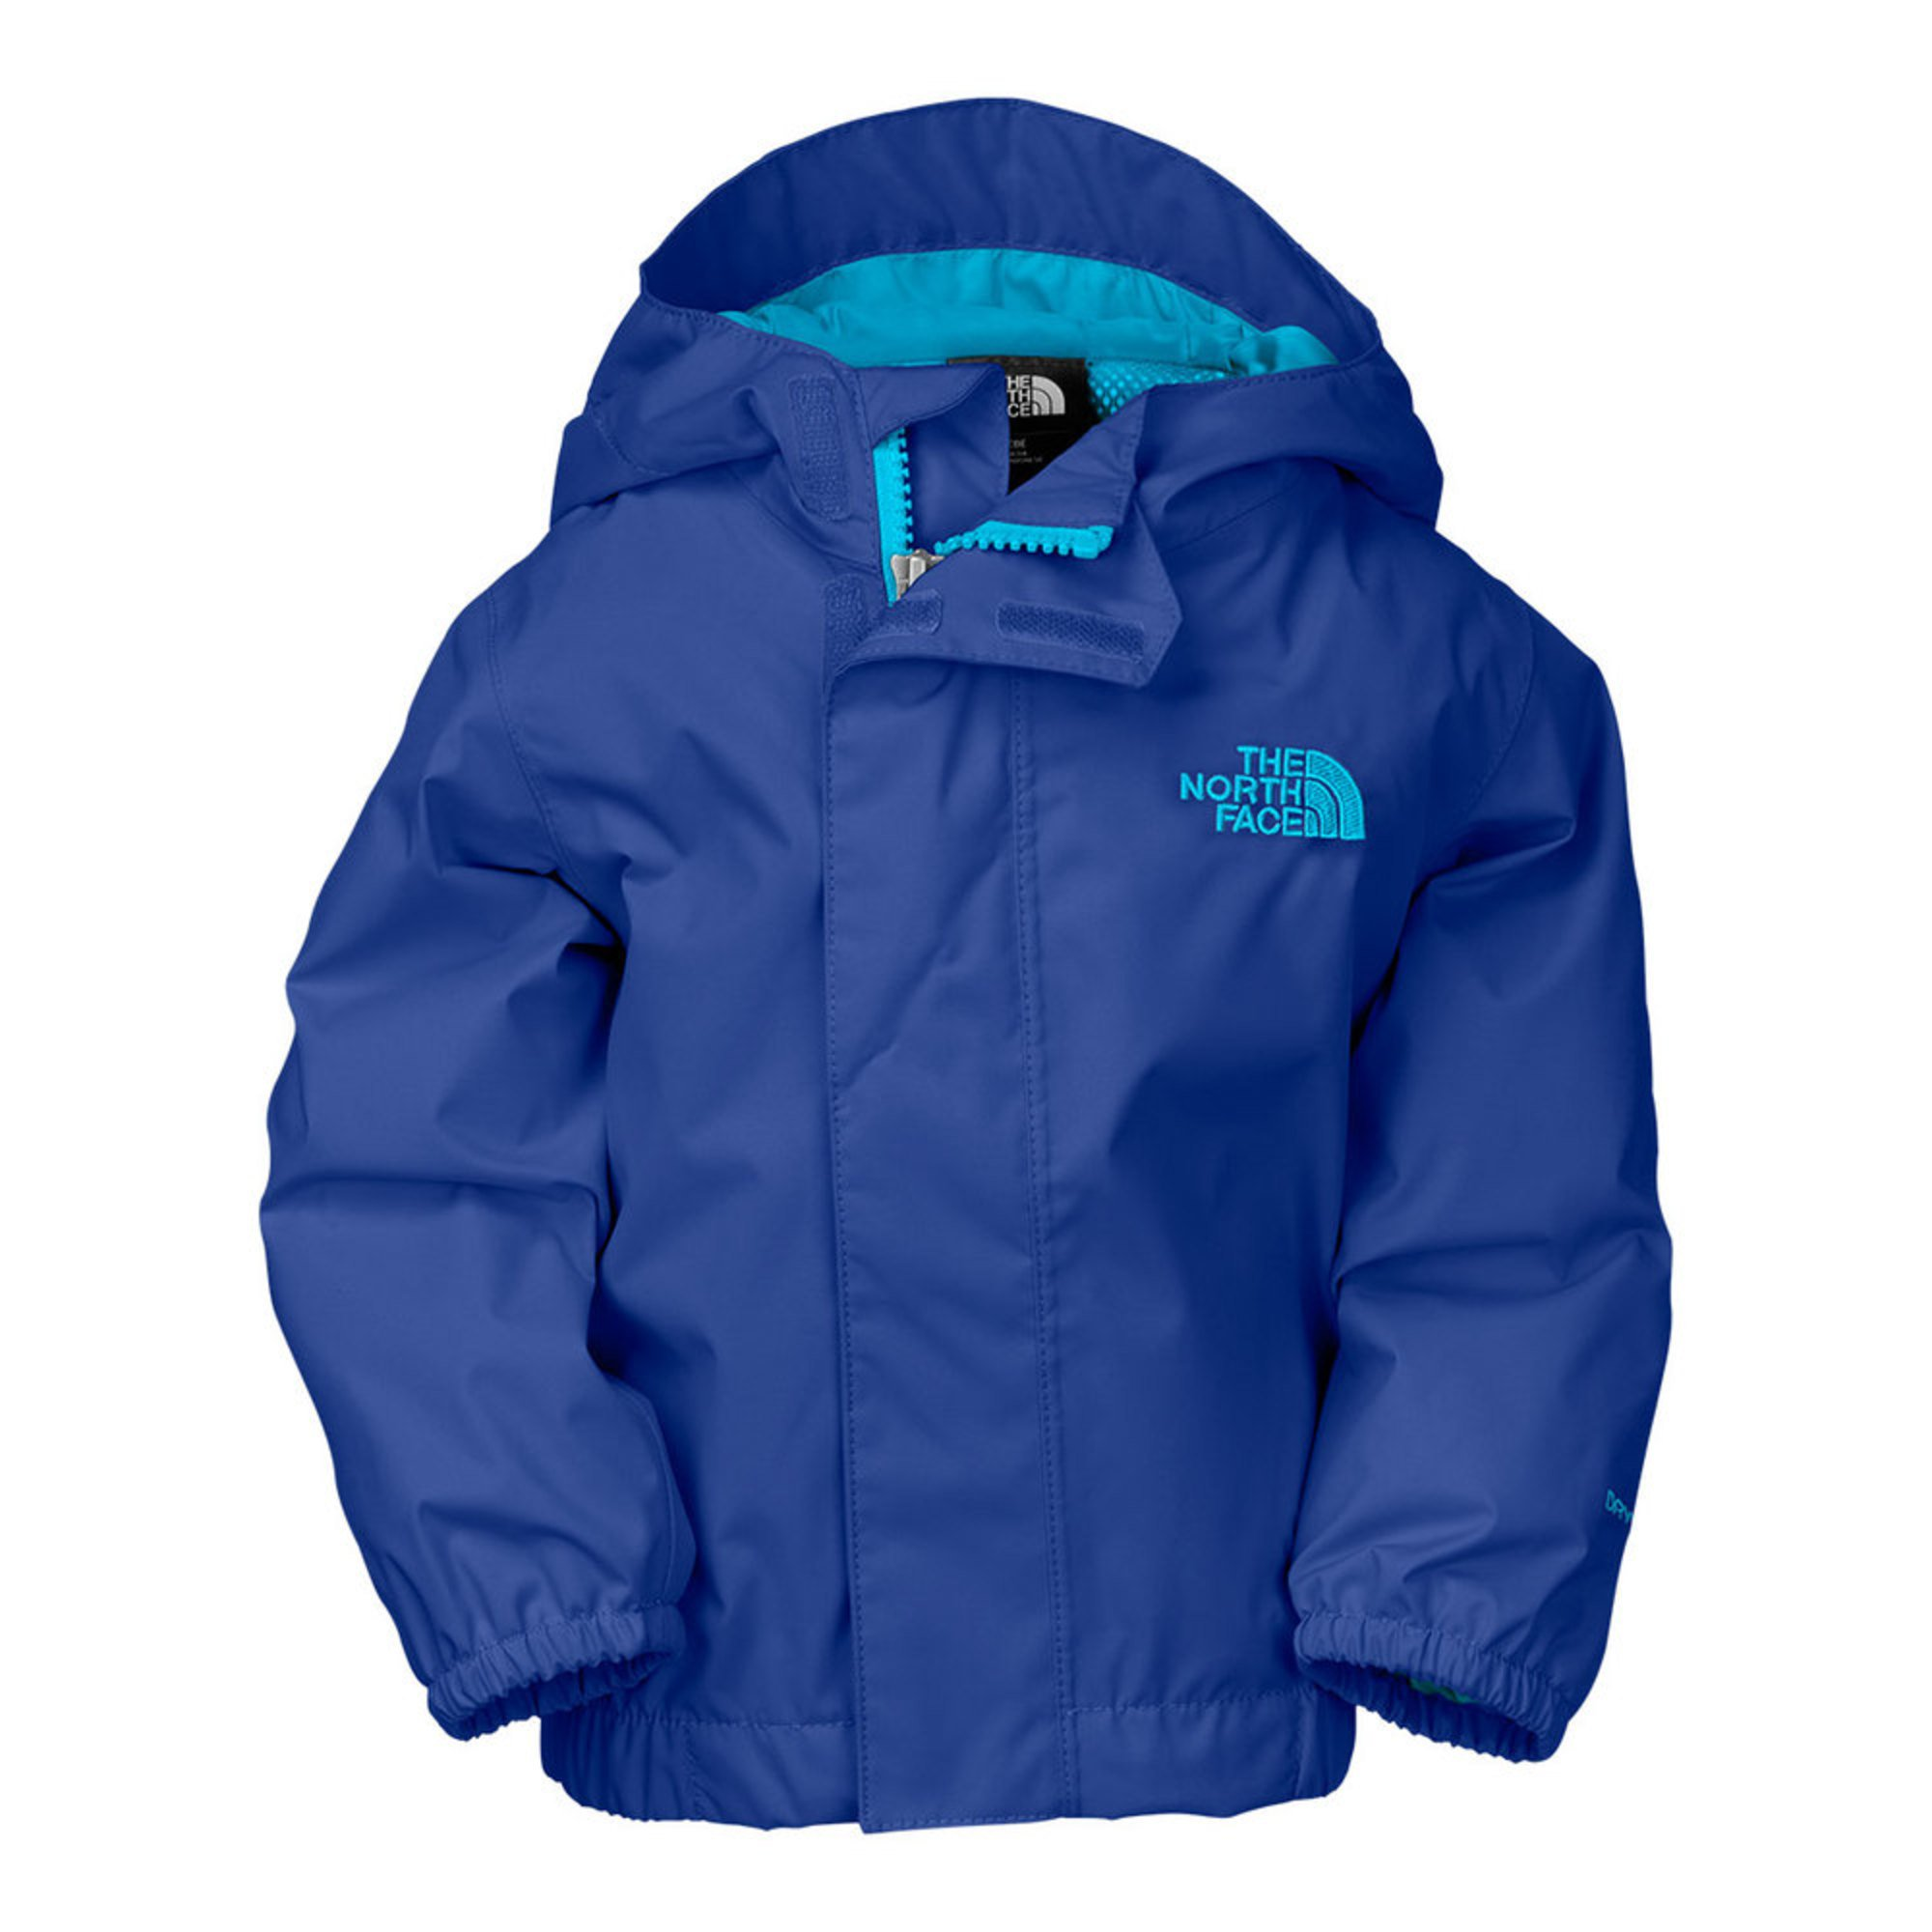 Find a great selection of kids' coats & jackets at 0549sahibi.tk Shop fleece jackets, raincoats, vests & more. Totally free shipping & returns.